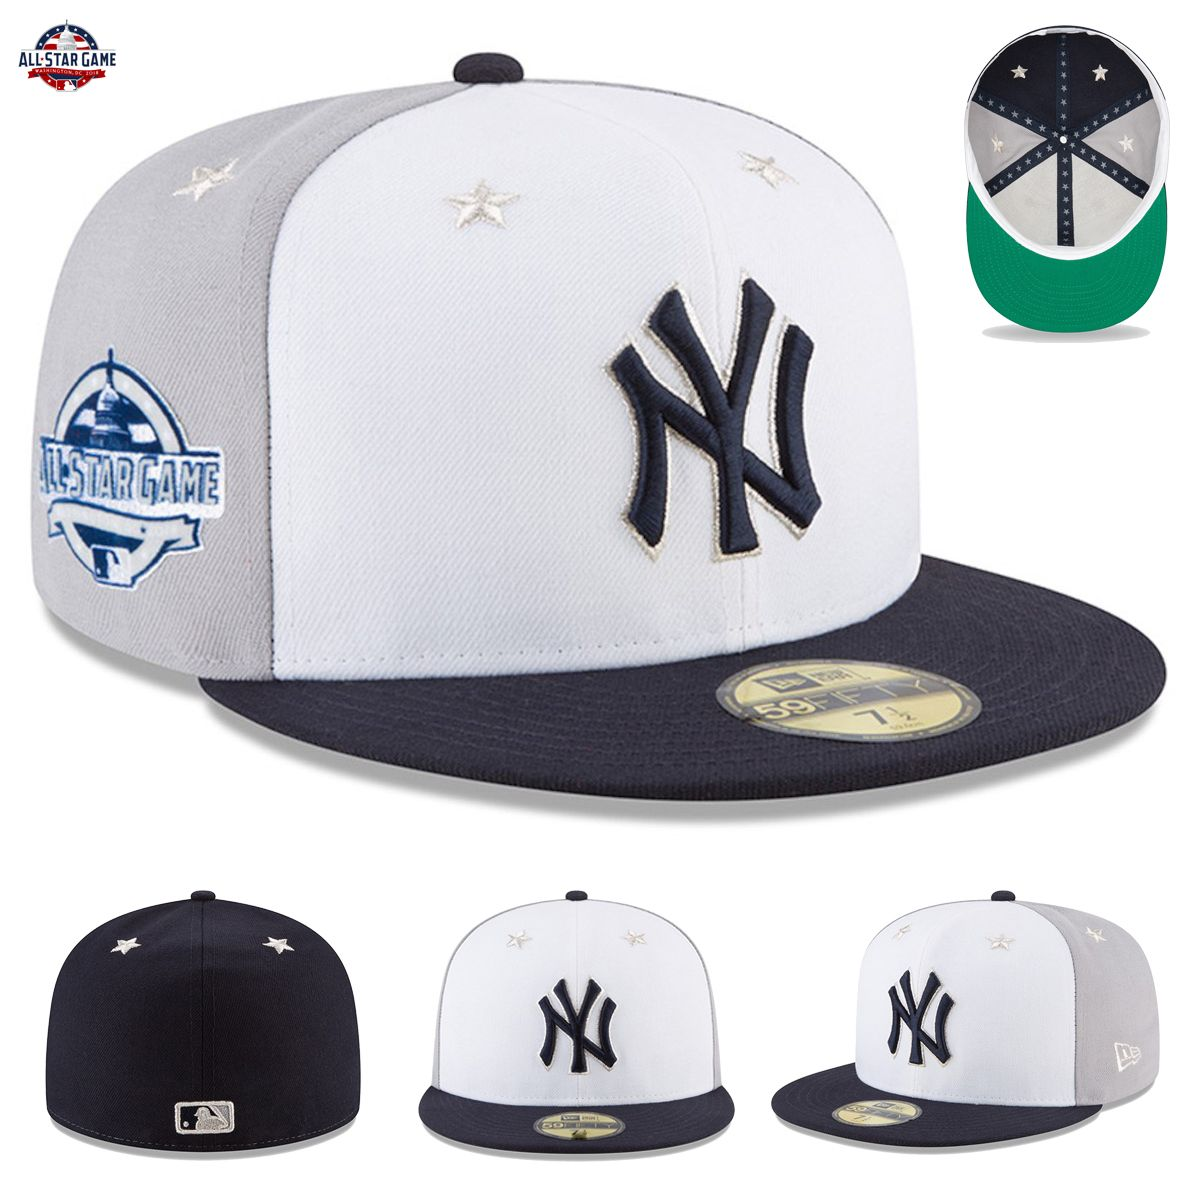 New York Yankees New Era 2018 MLB All-Star Game Hat Cap On-Field 59FIFTY  Fitted. Each year you look forward to MLB All-Star Week and seeing all your  ... f4e5994fe18